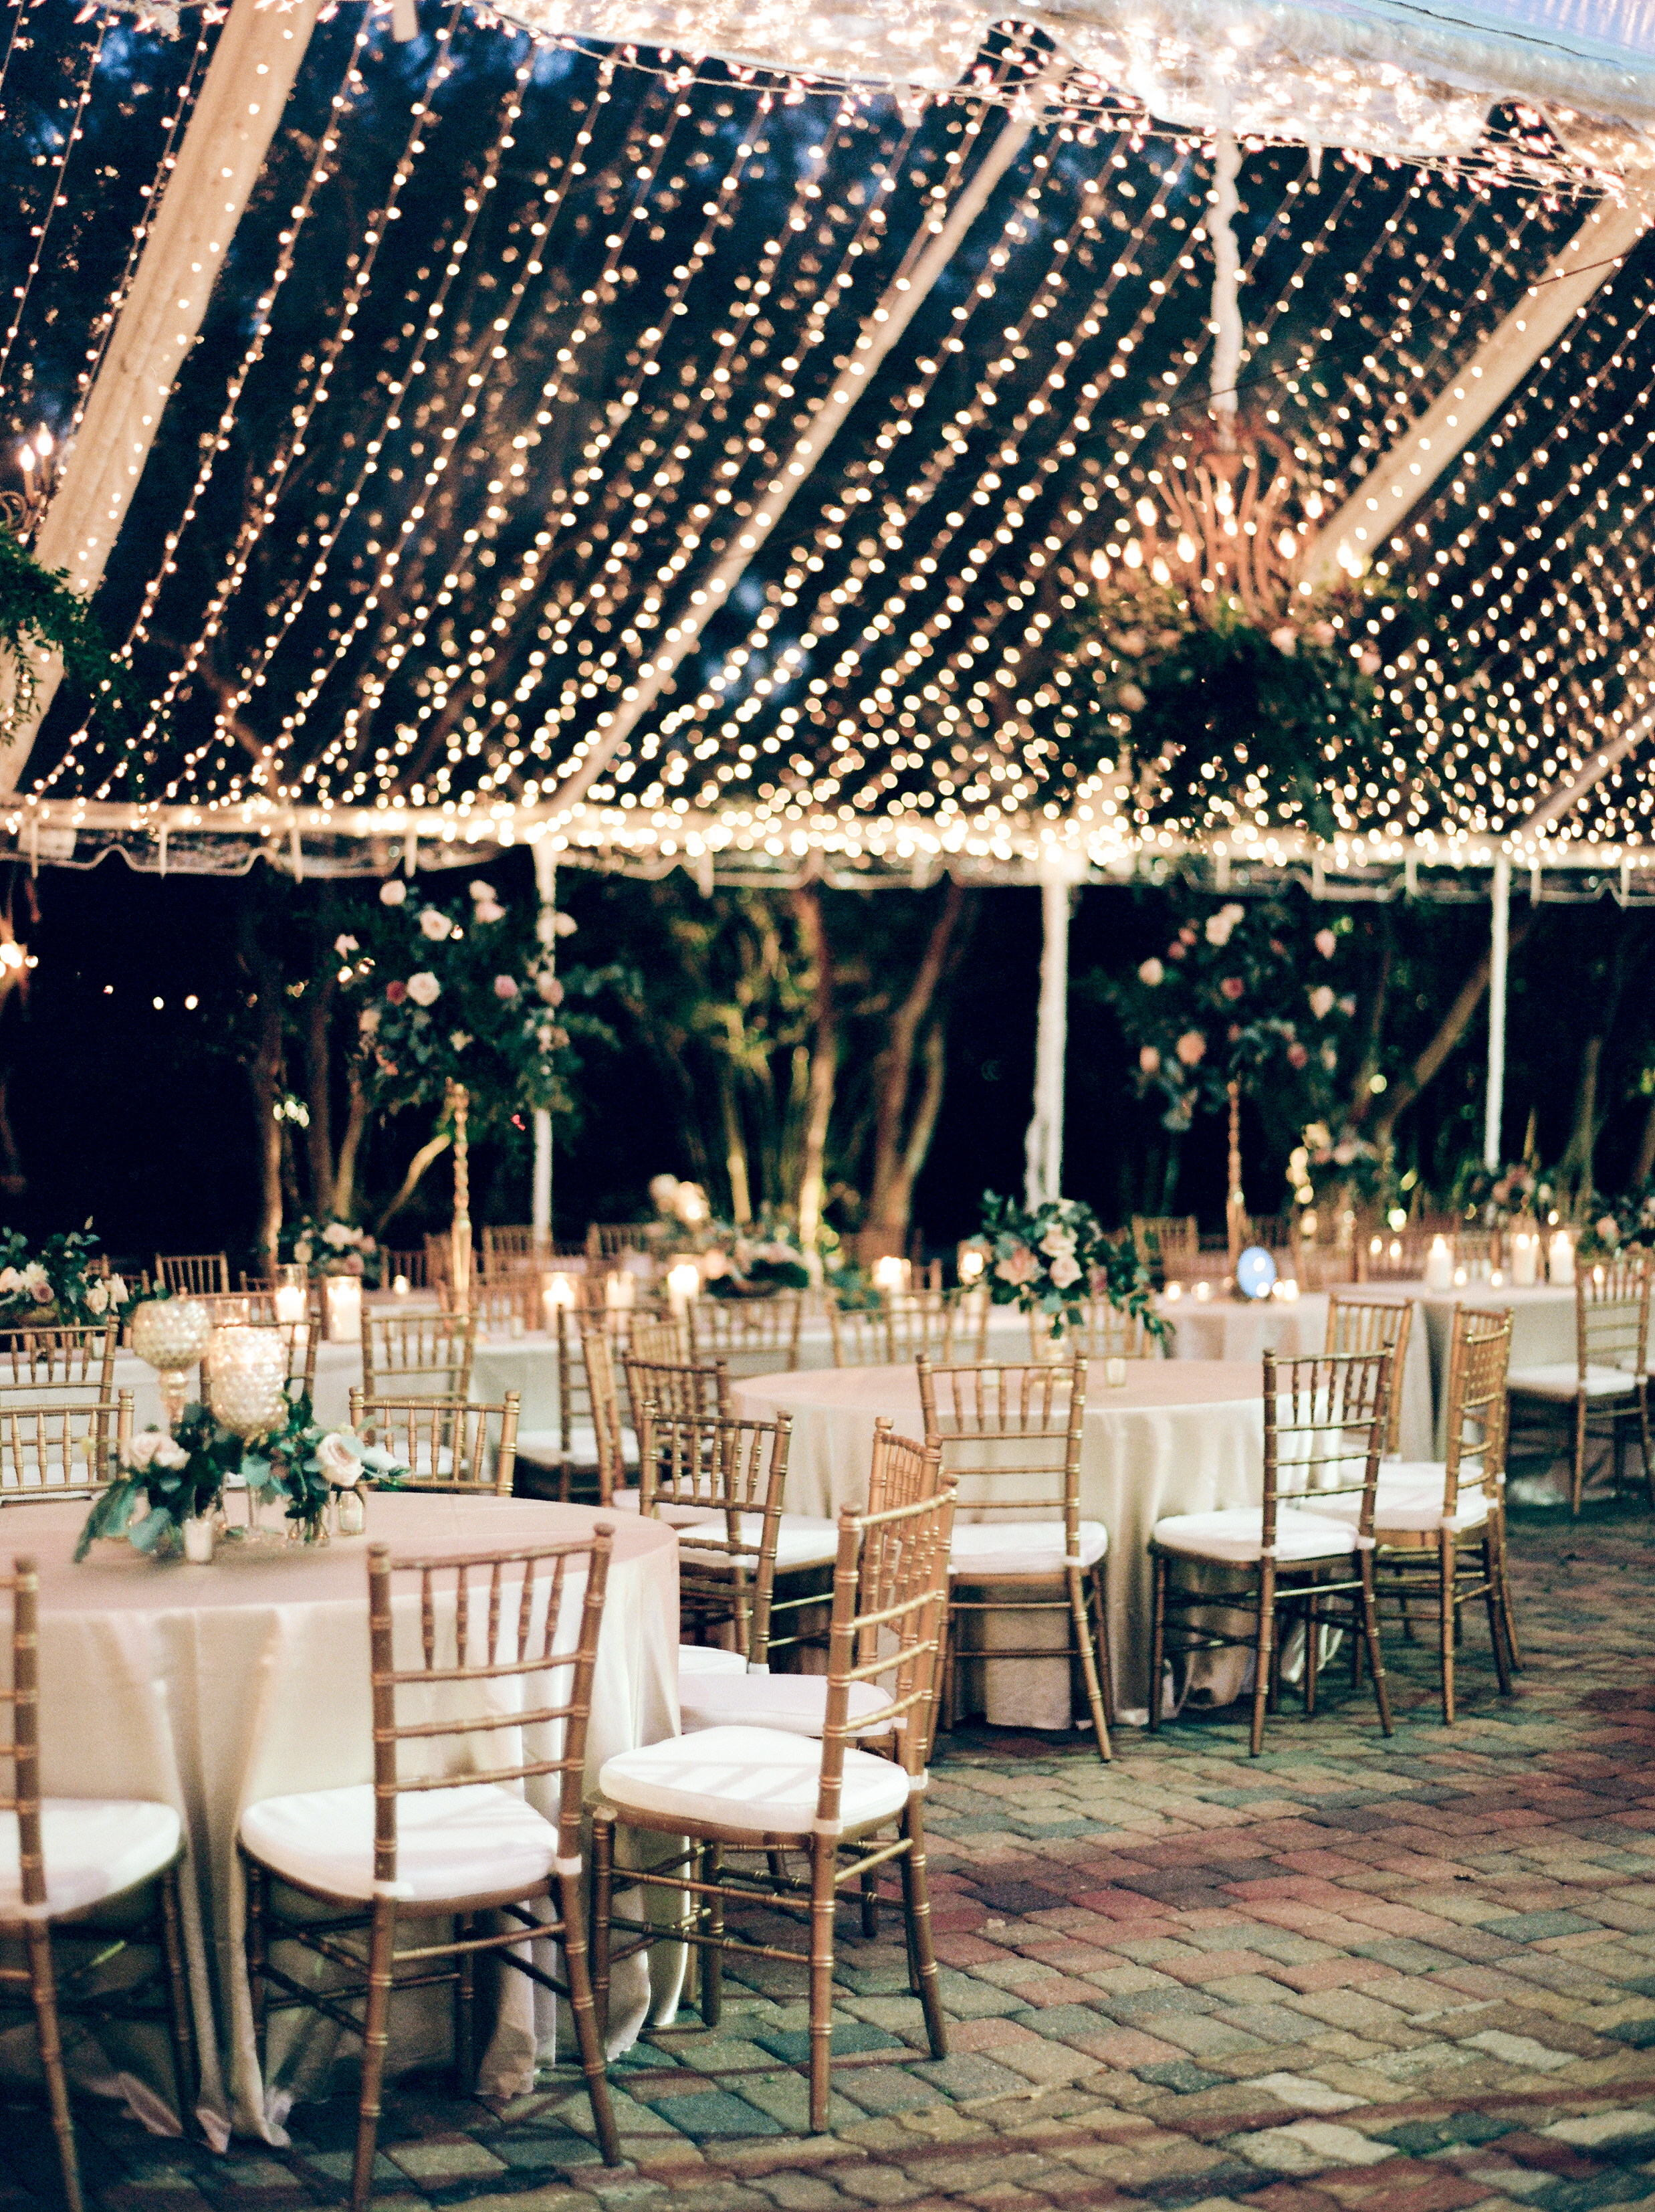 Southern Fete, Southern Wedding, Light Decor, White and Gold Wedding chairs, Green and Pink Flower Bouquets